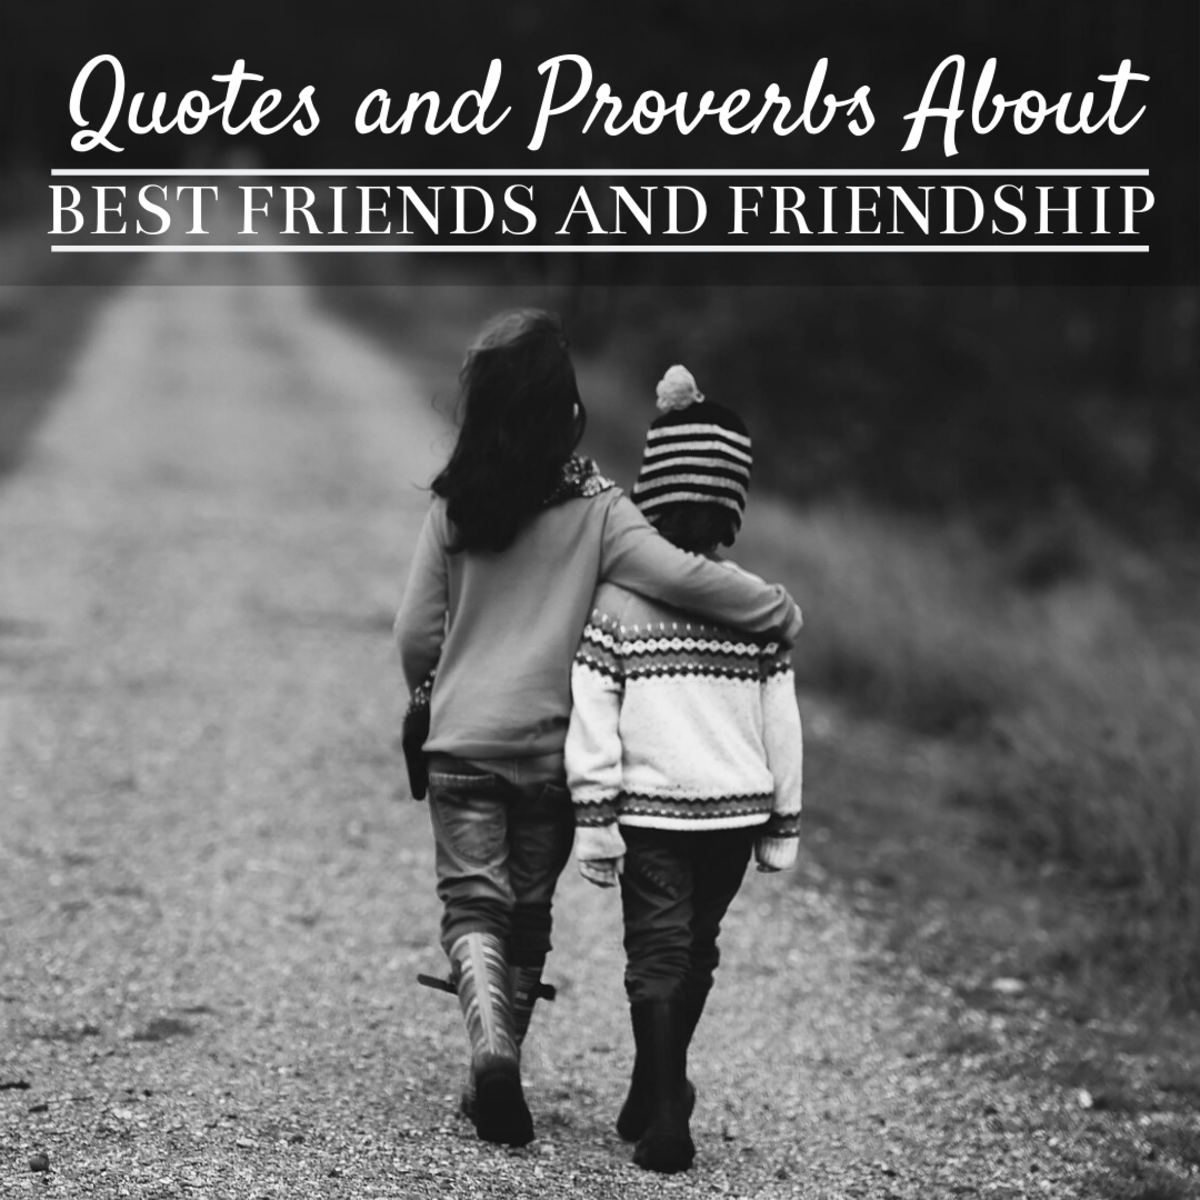 Best Friends: Quotes, Sayings, and Proverbs About Friendship